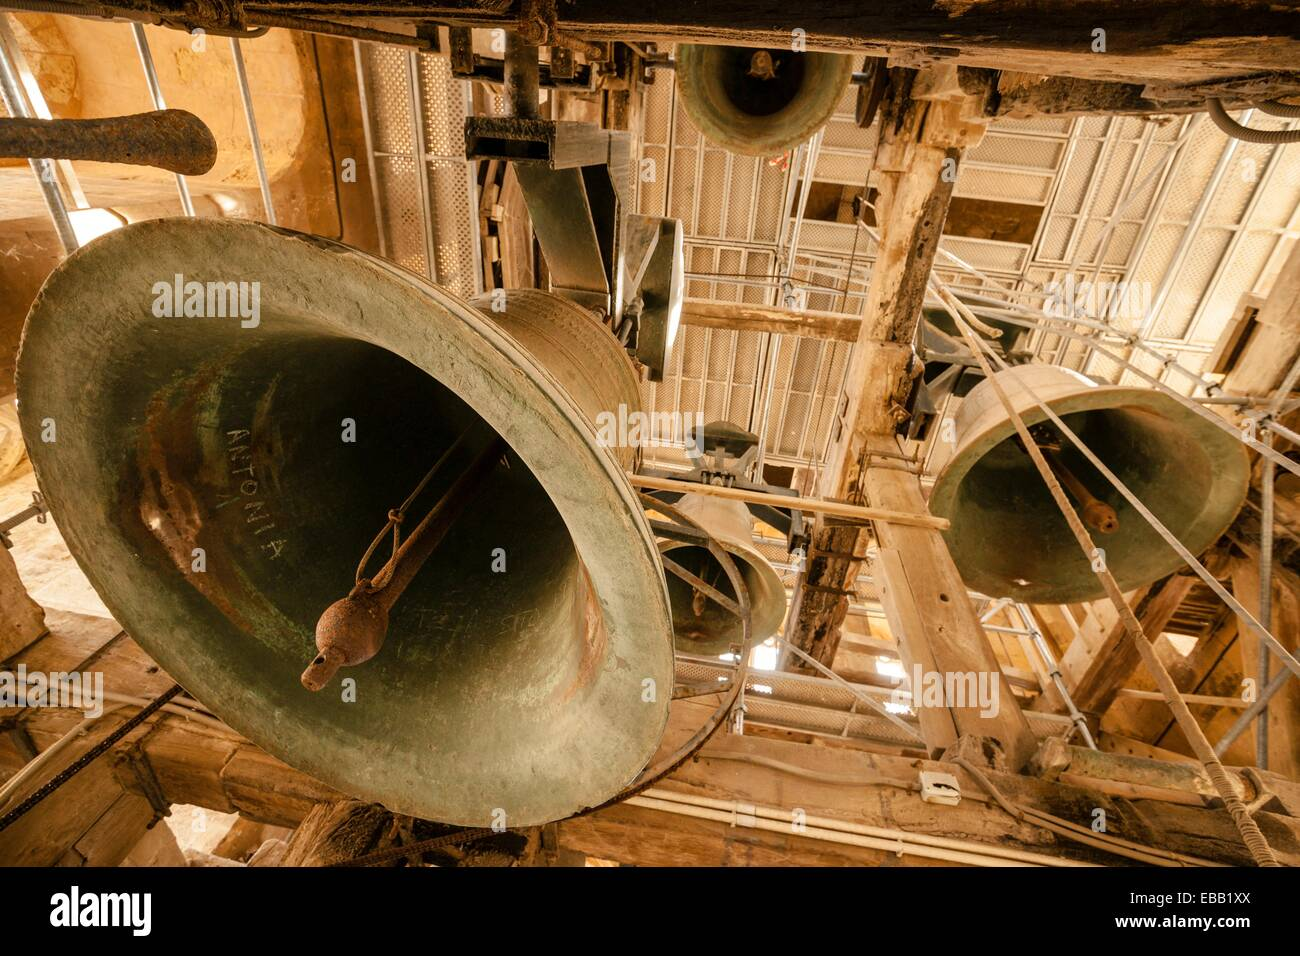 bells in the bell tower of the fifteenth century, Mallorca Cathedral, XIII Century, Historic-Artistic, Palma, Mallorca, - Stock Image